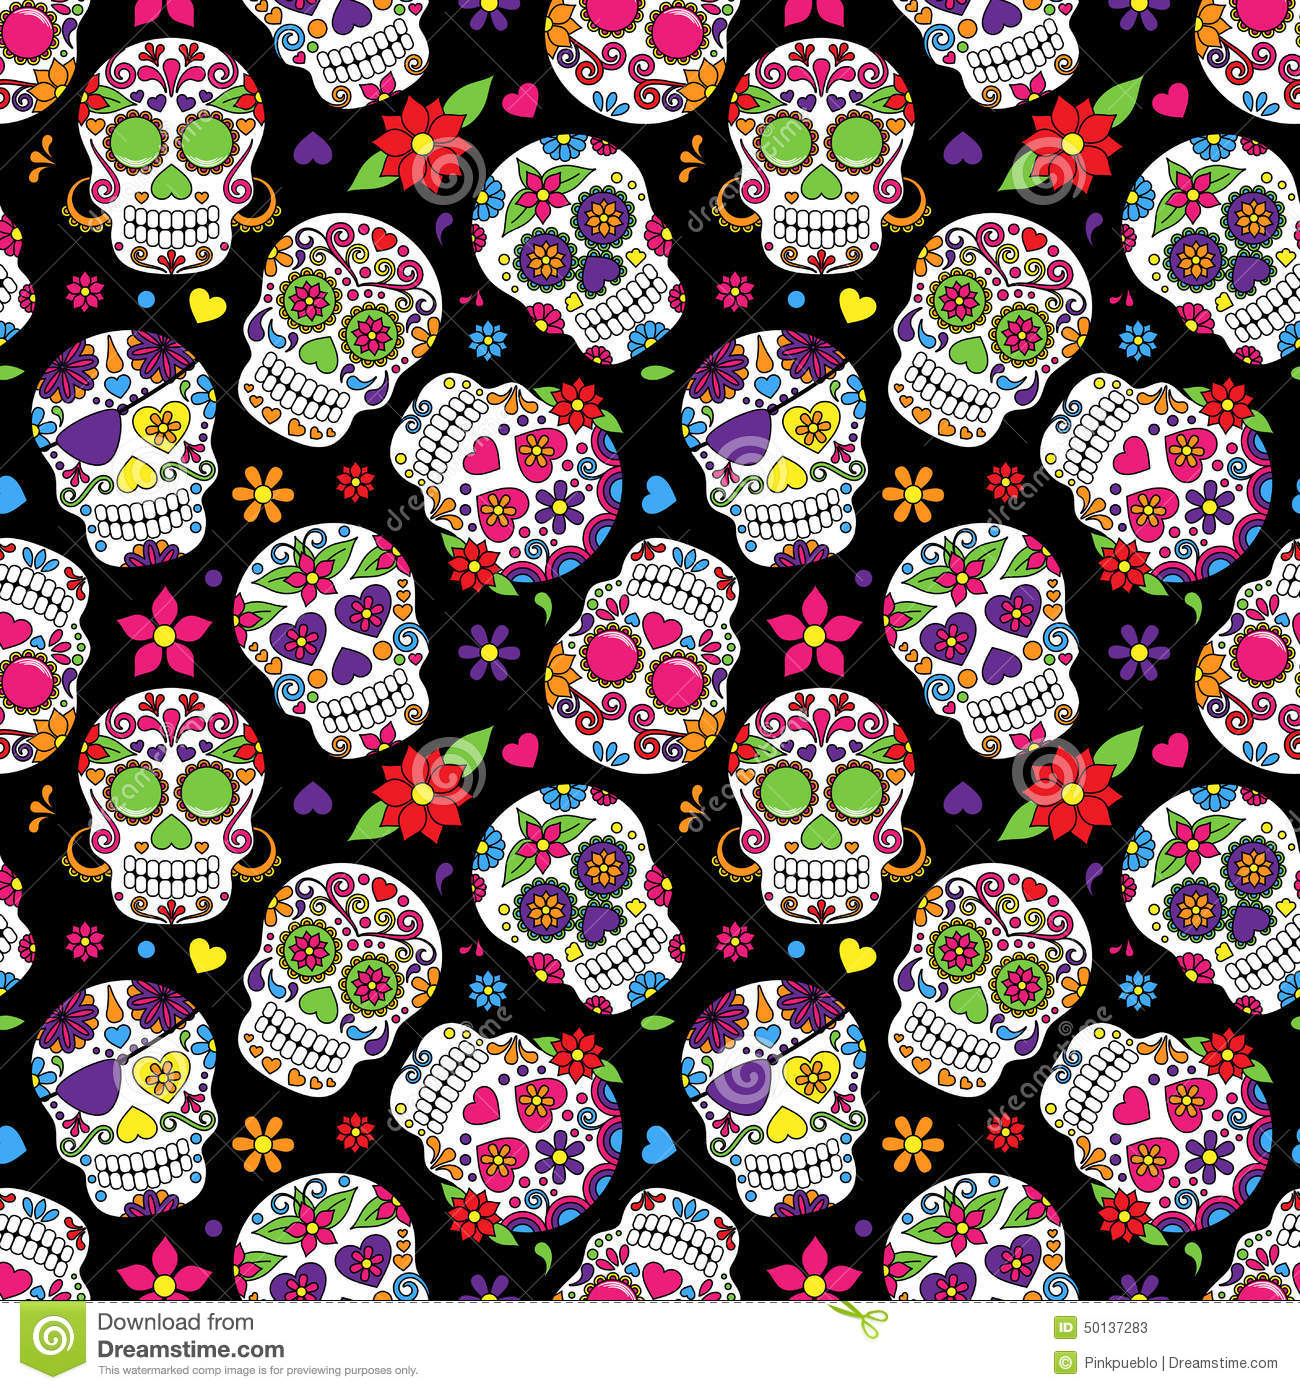 Cute Butterflies Hd Wallpapers Day Of The Dead Sugar Skull Seamless Vector Background